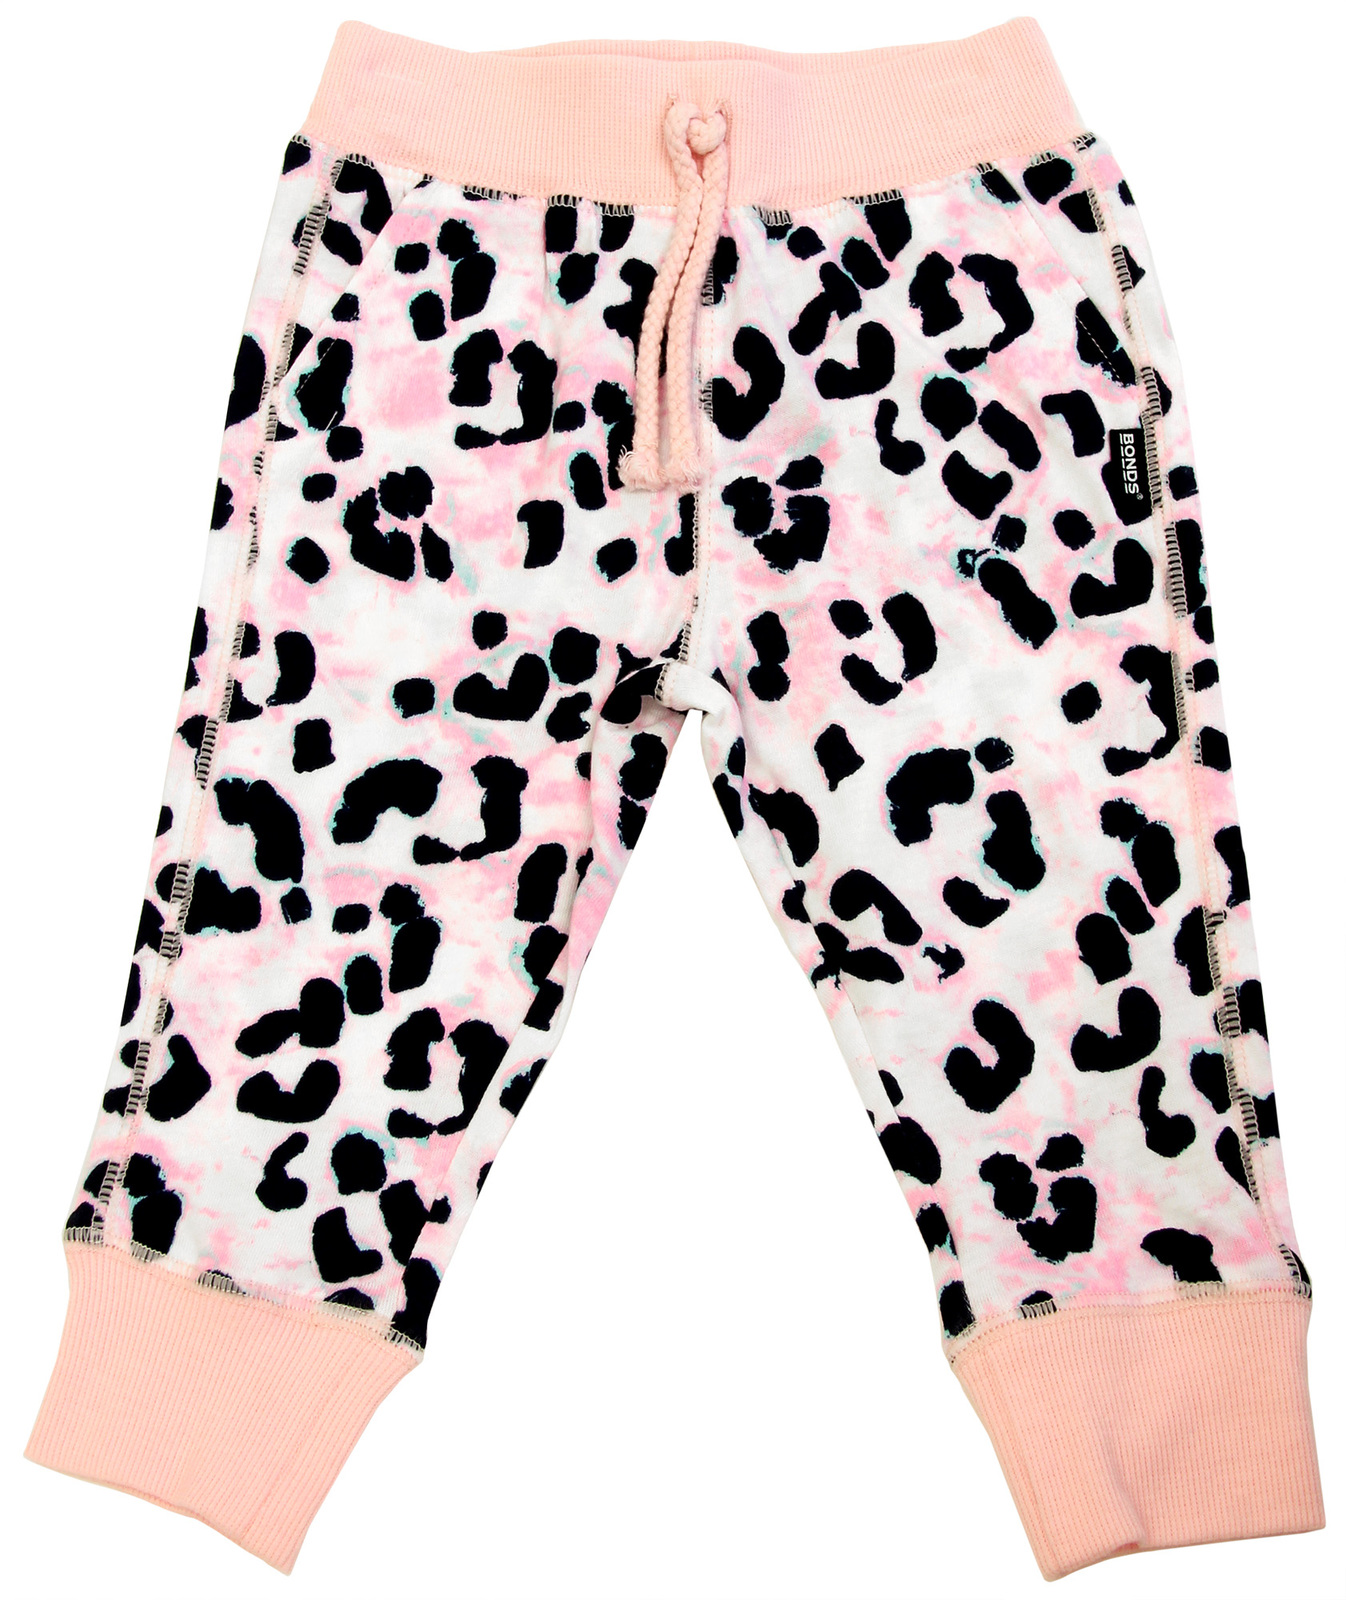 Bonds Hipster Trackie Pants - Inked Spot Kid (18-24 Months) image